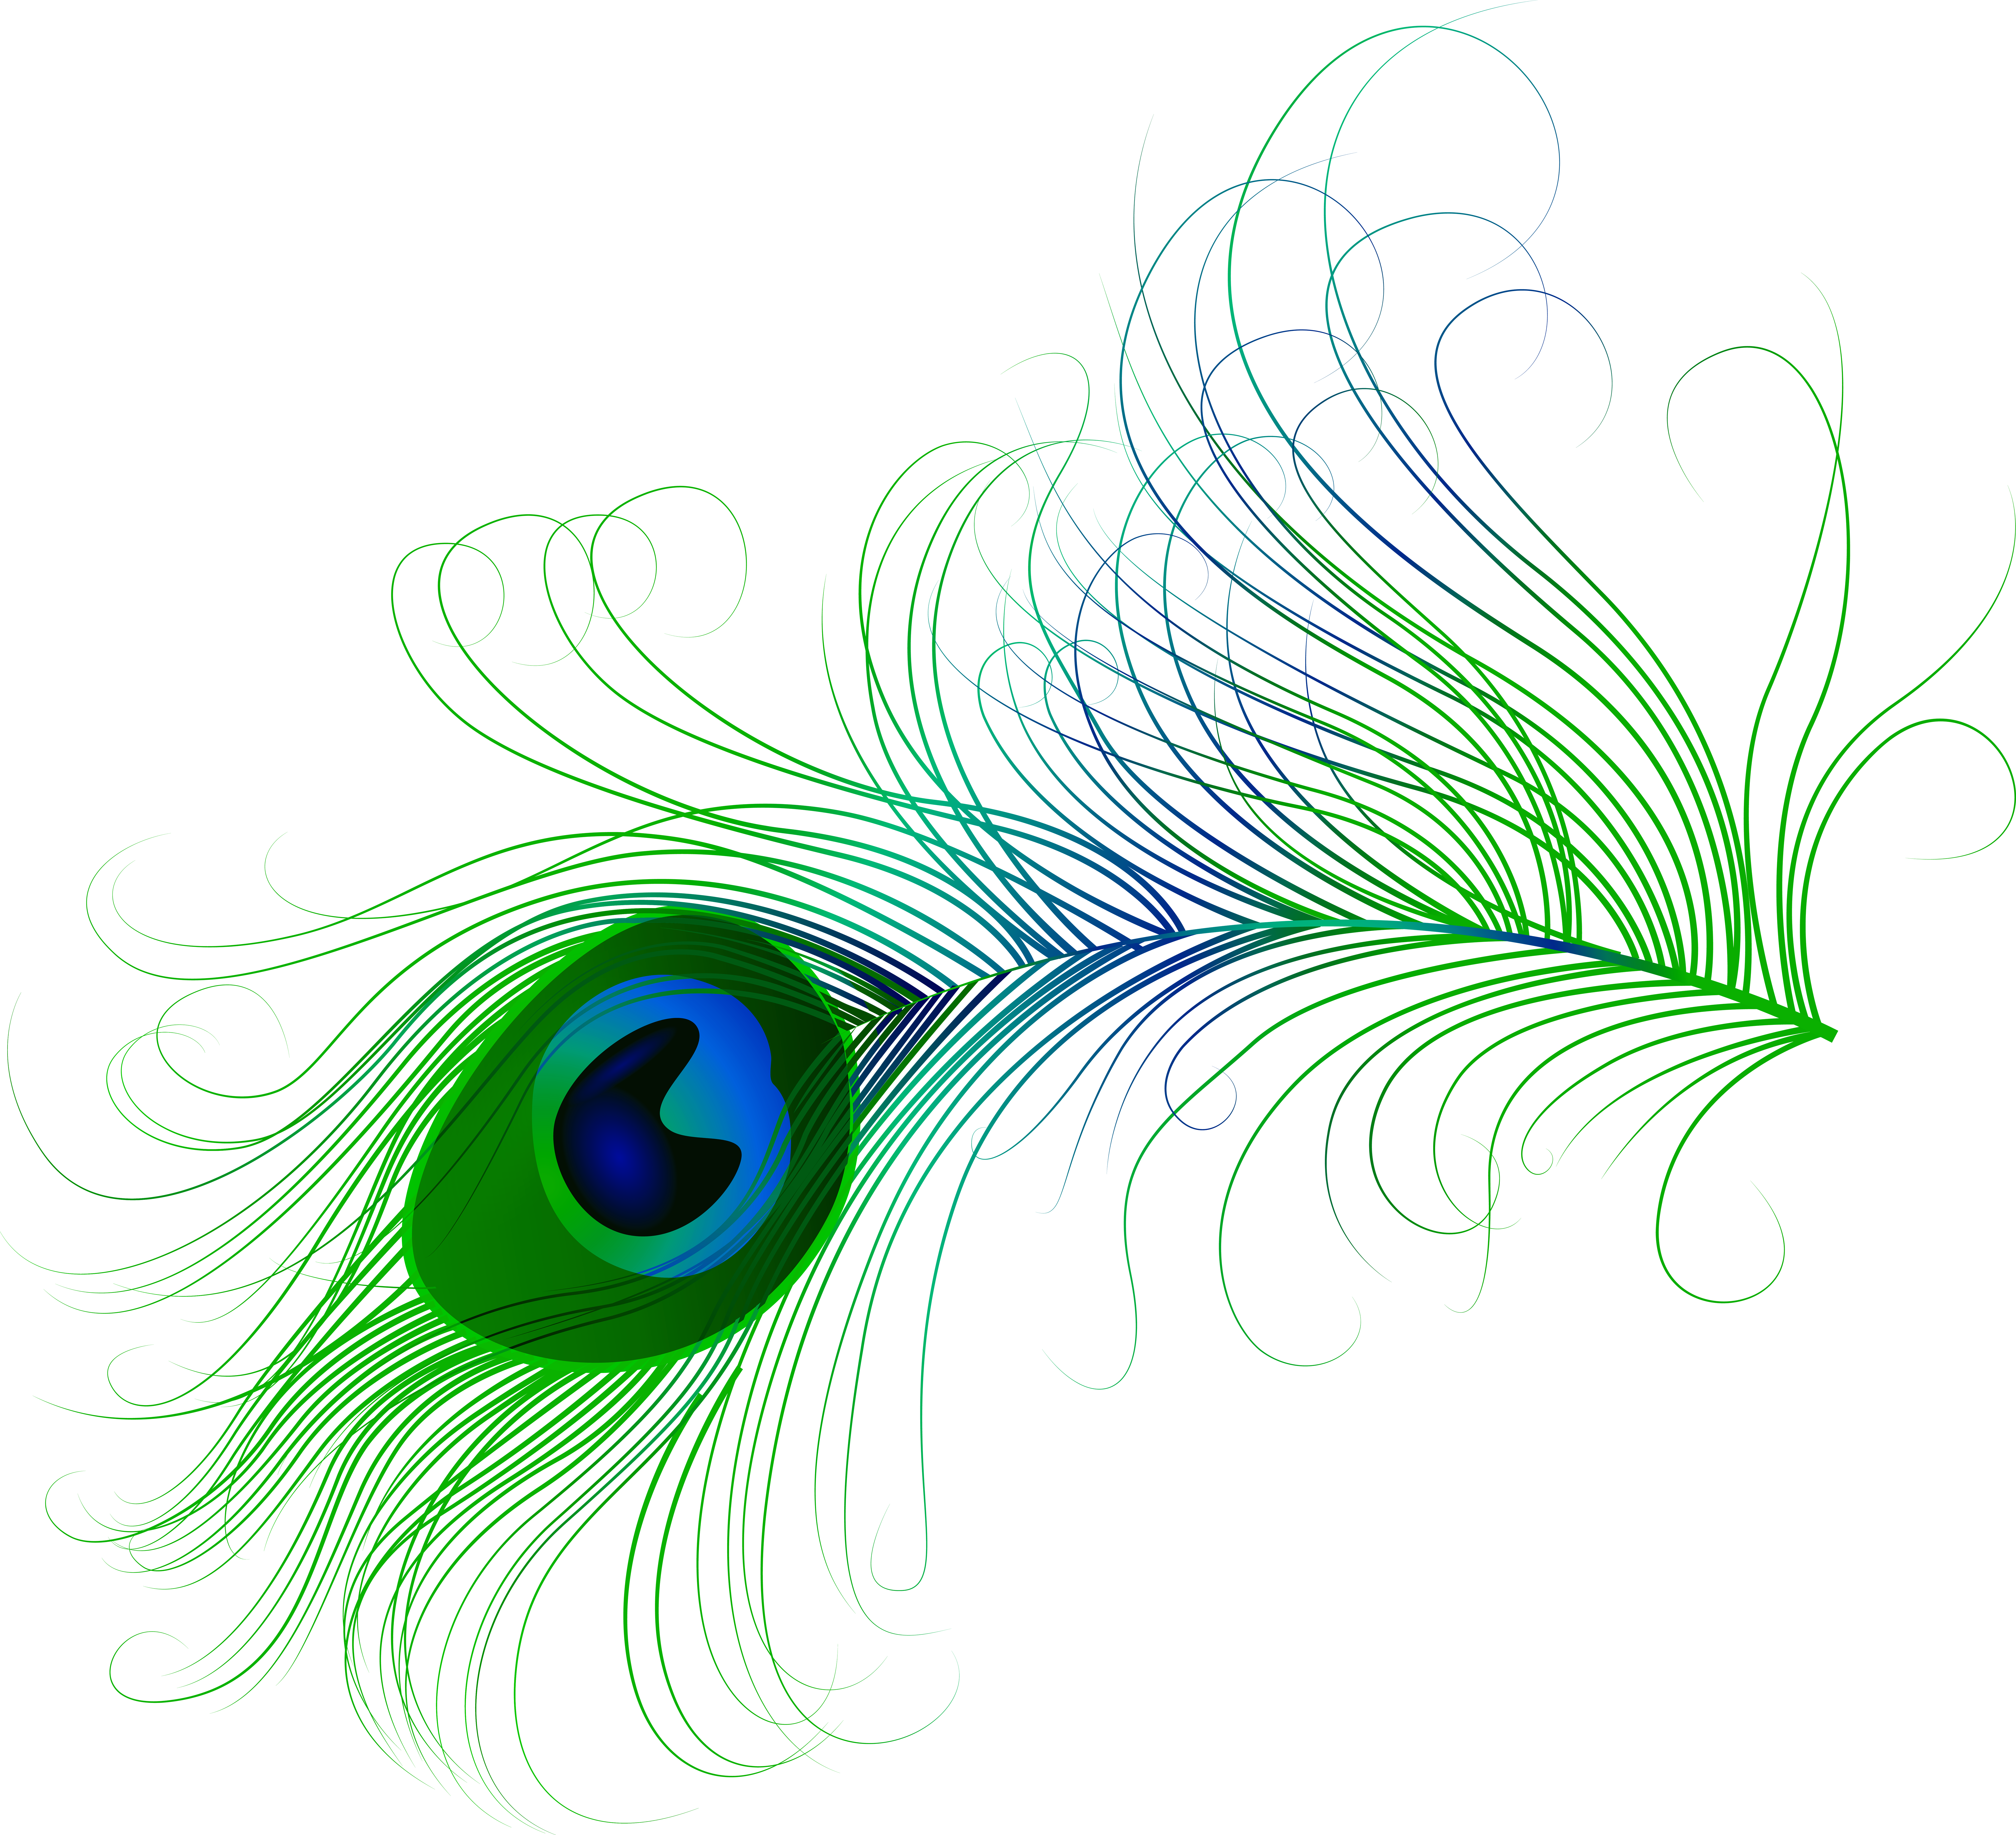 Clipart of peacock feather banner royalty free Peacock Feather PNG Clip Art Image | Gallery Yopriceville - High ... banner royalty free